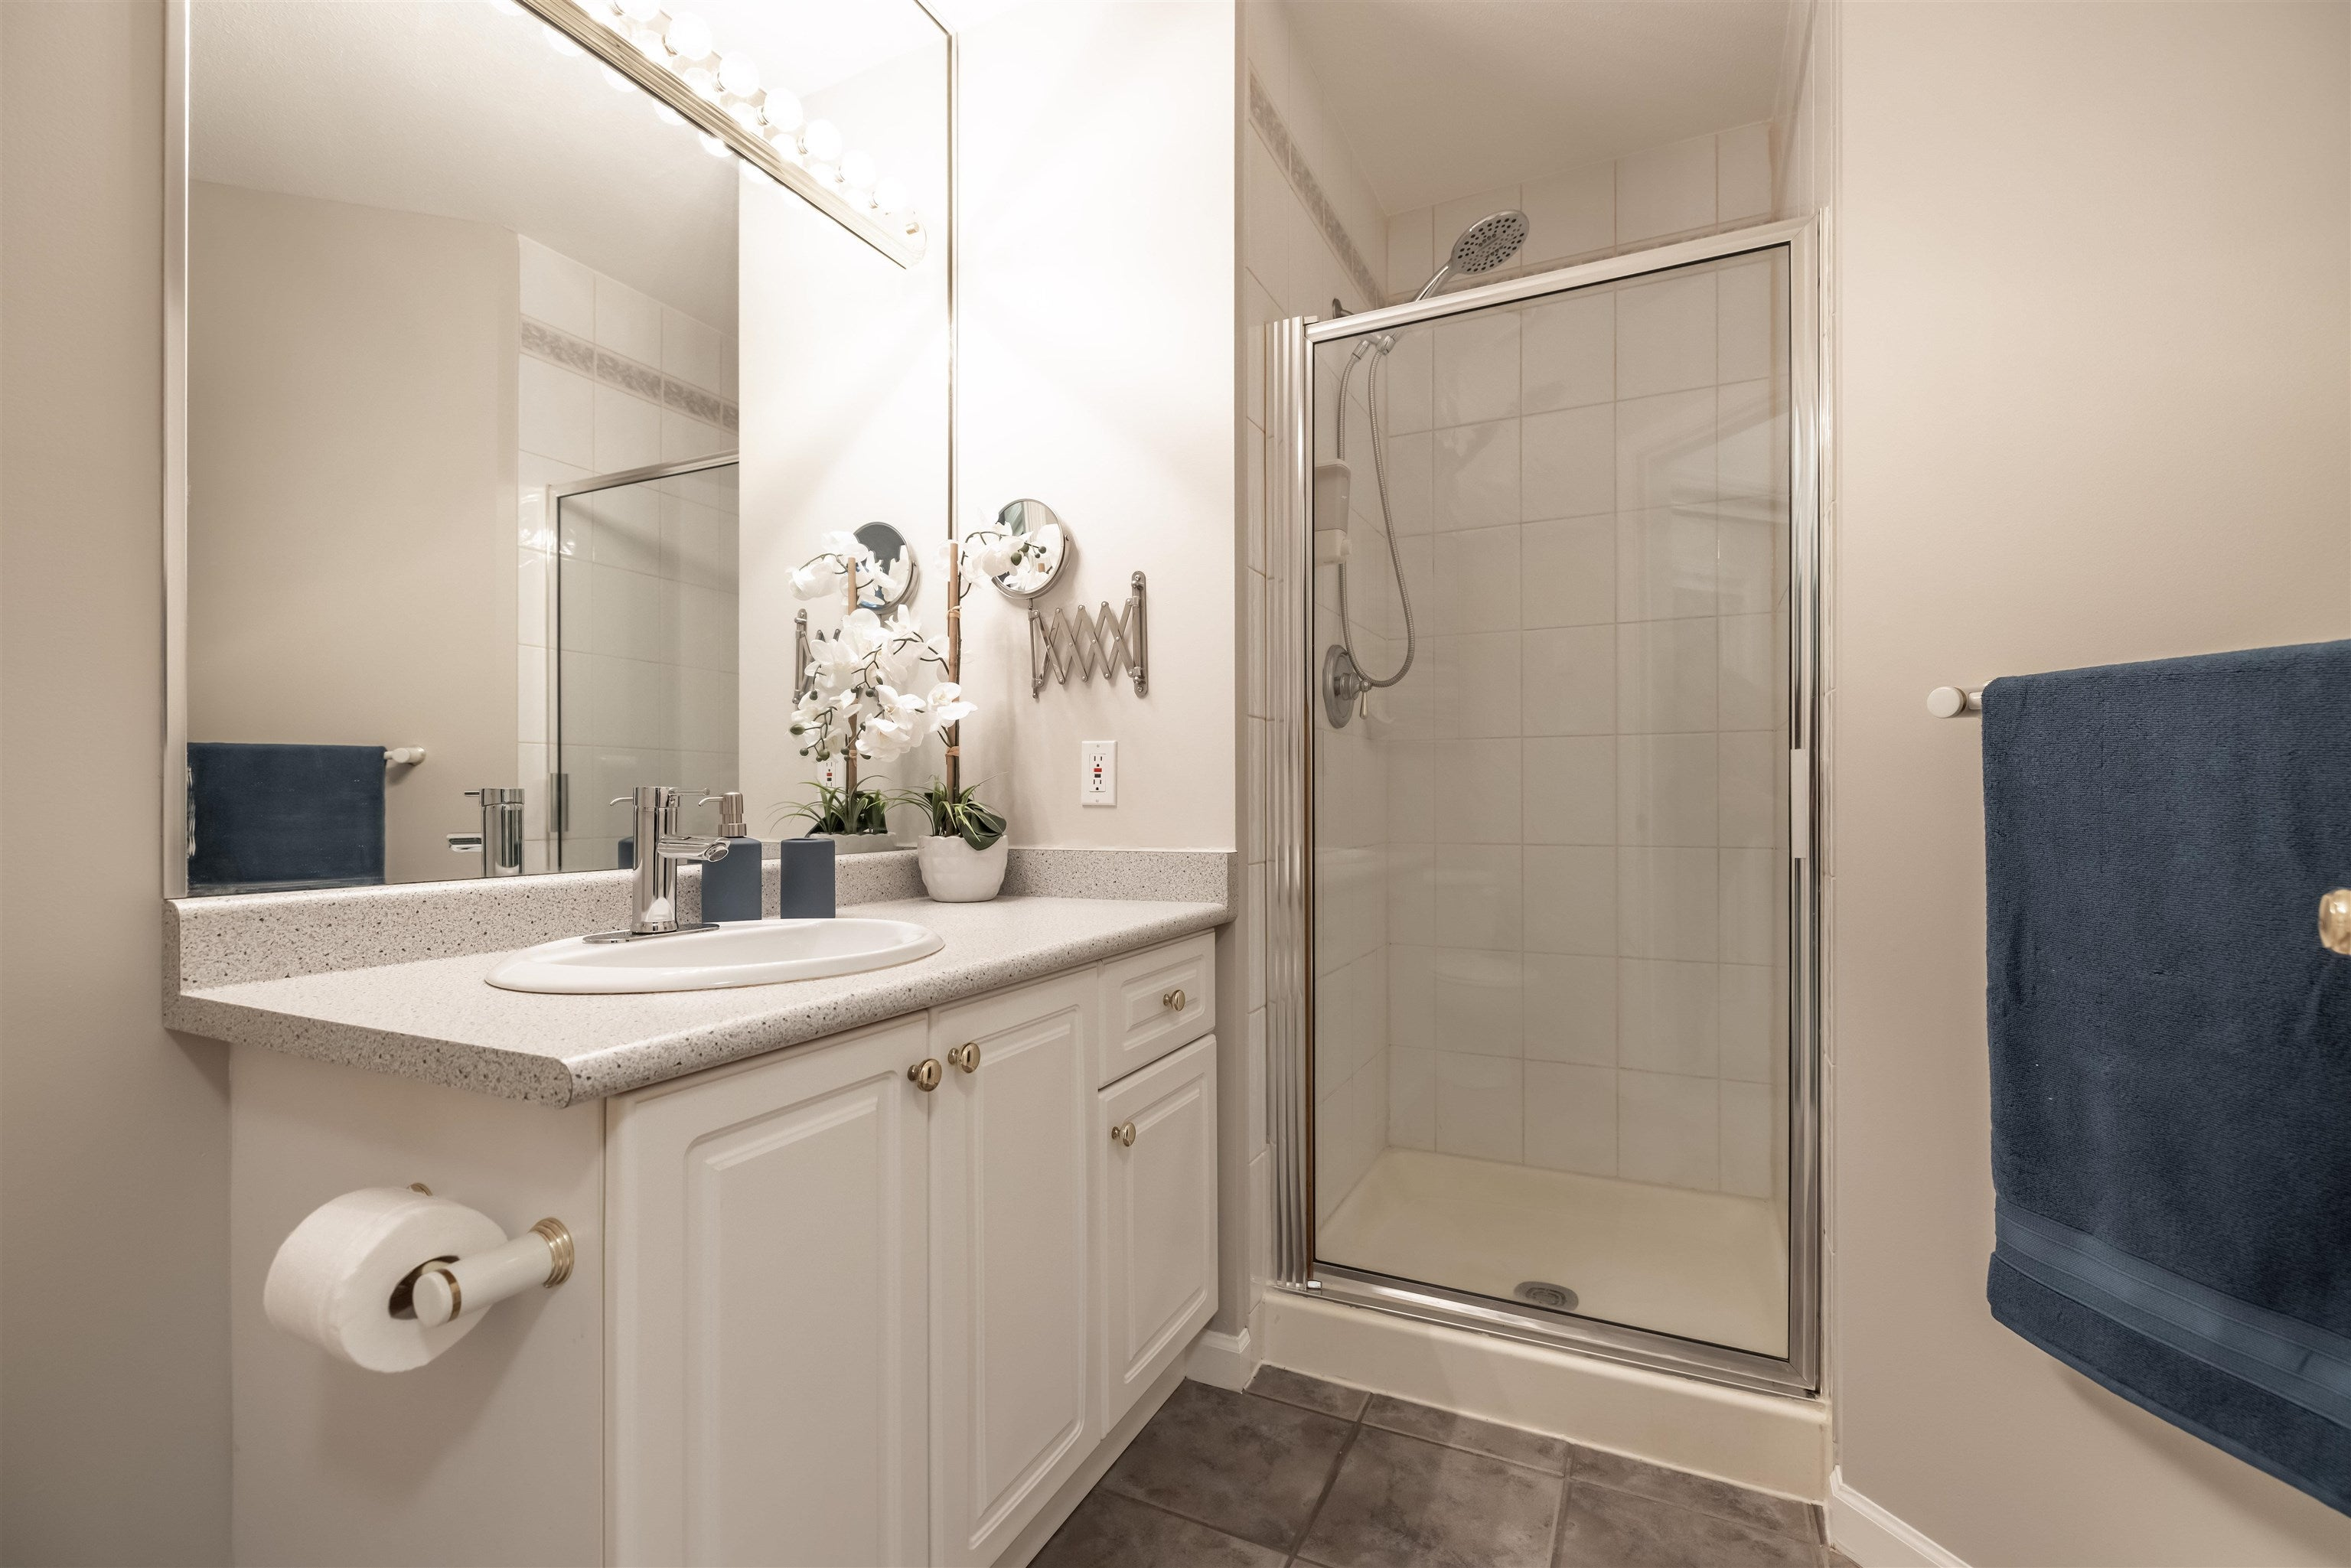 105 8139 121A STREET - Queen Mary Park Surrey Apartment/Condo for sale, 2 Bedrooms (R2623168) - #24